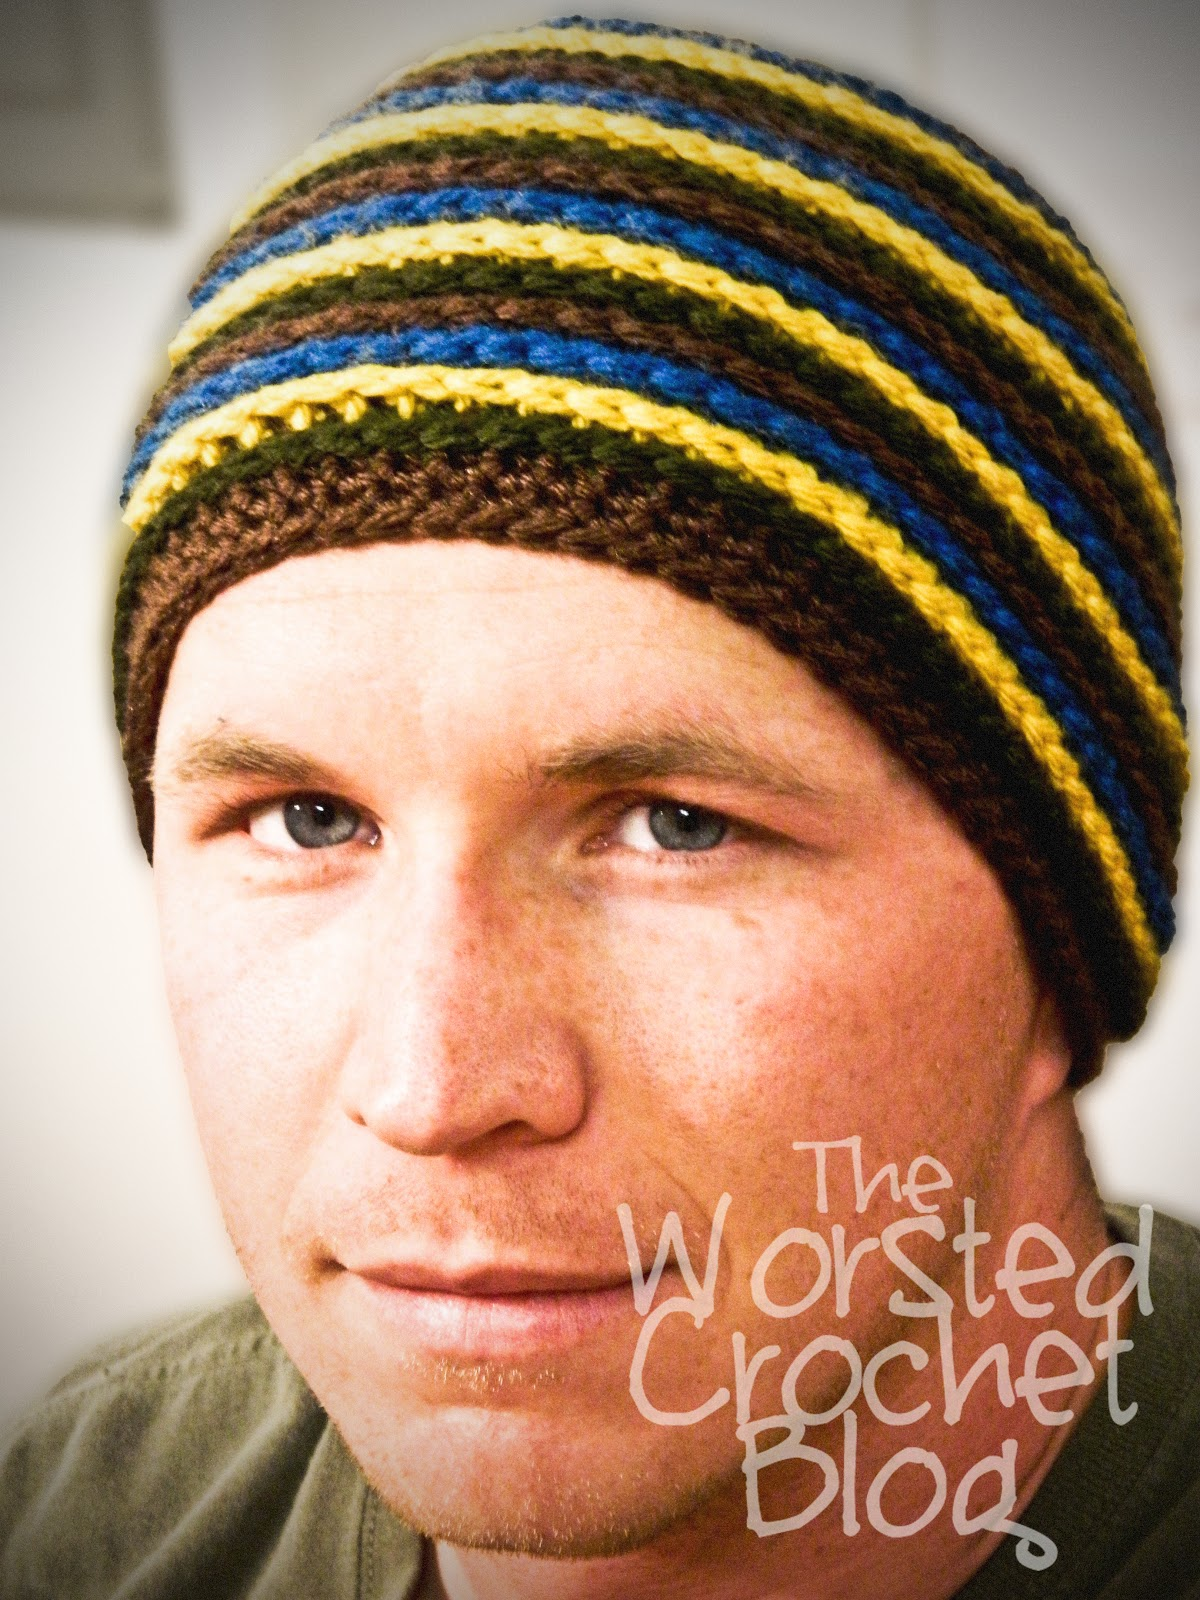 The Worsted Crochet Blog: Mens Striped Beanie Pattern FREE